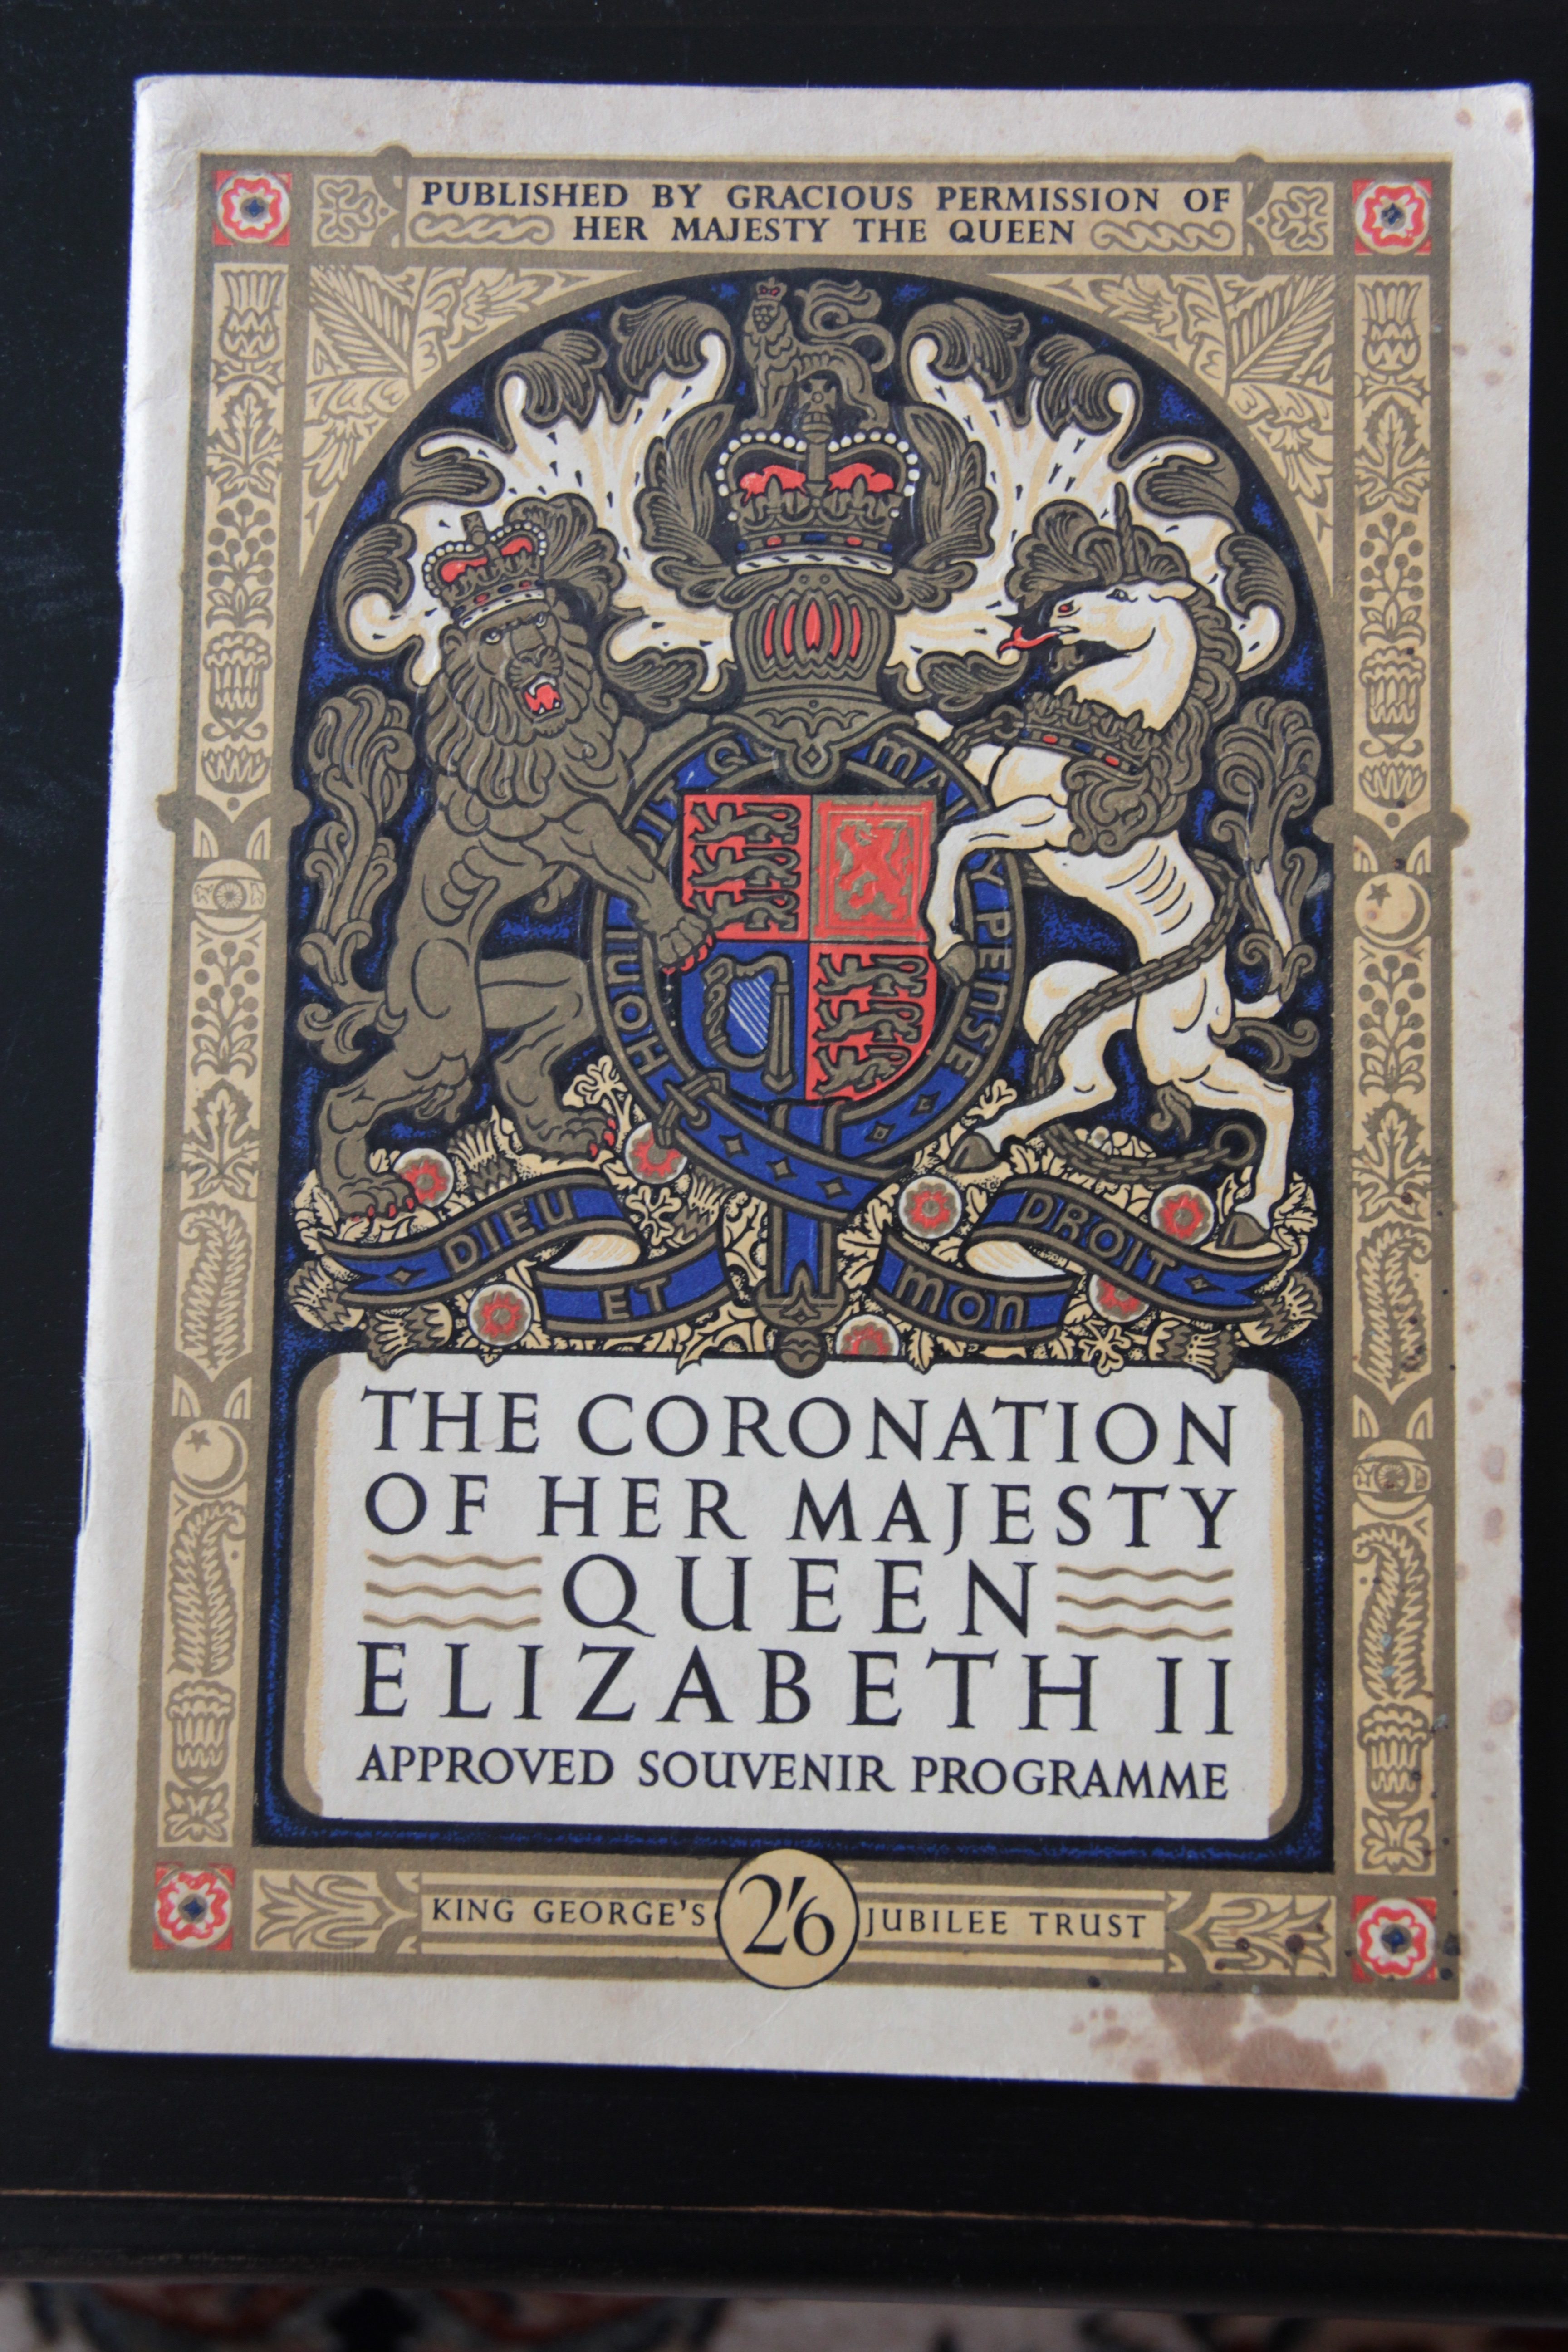 Queen Elizabeth II's Coronation Program